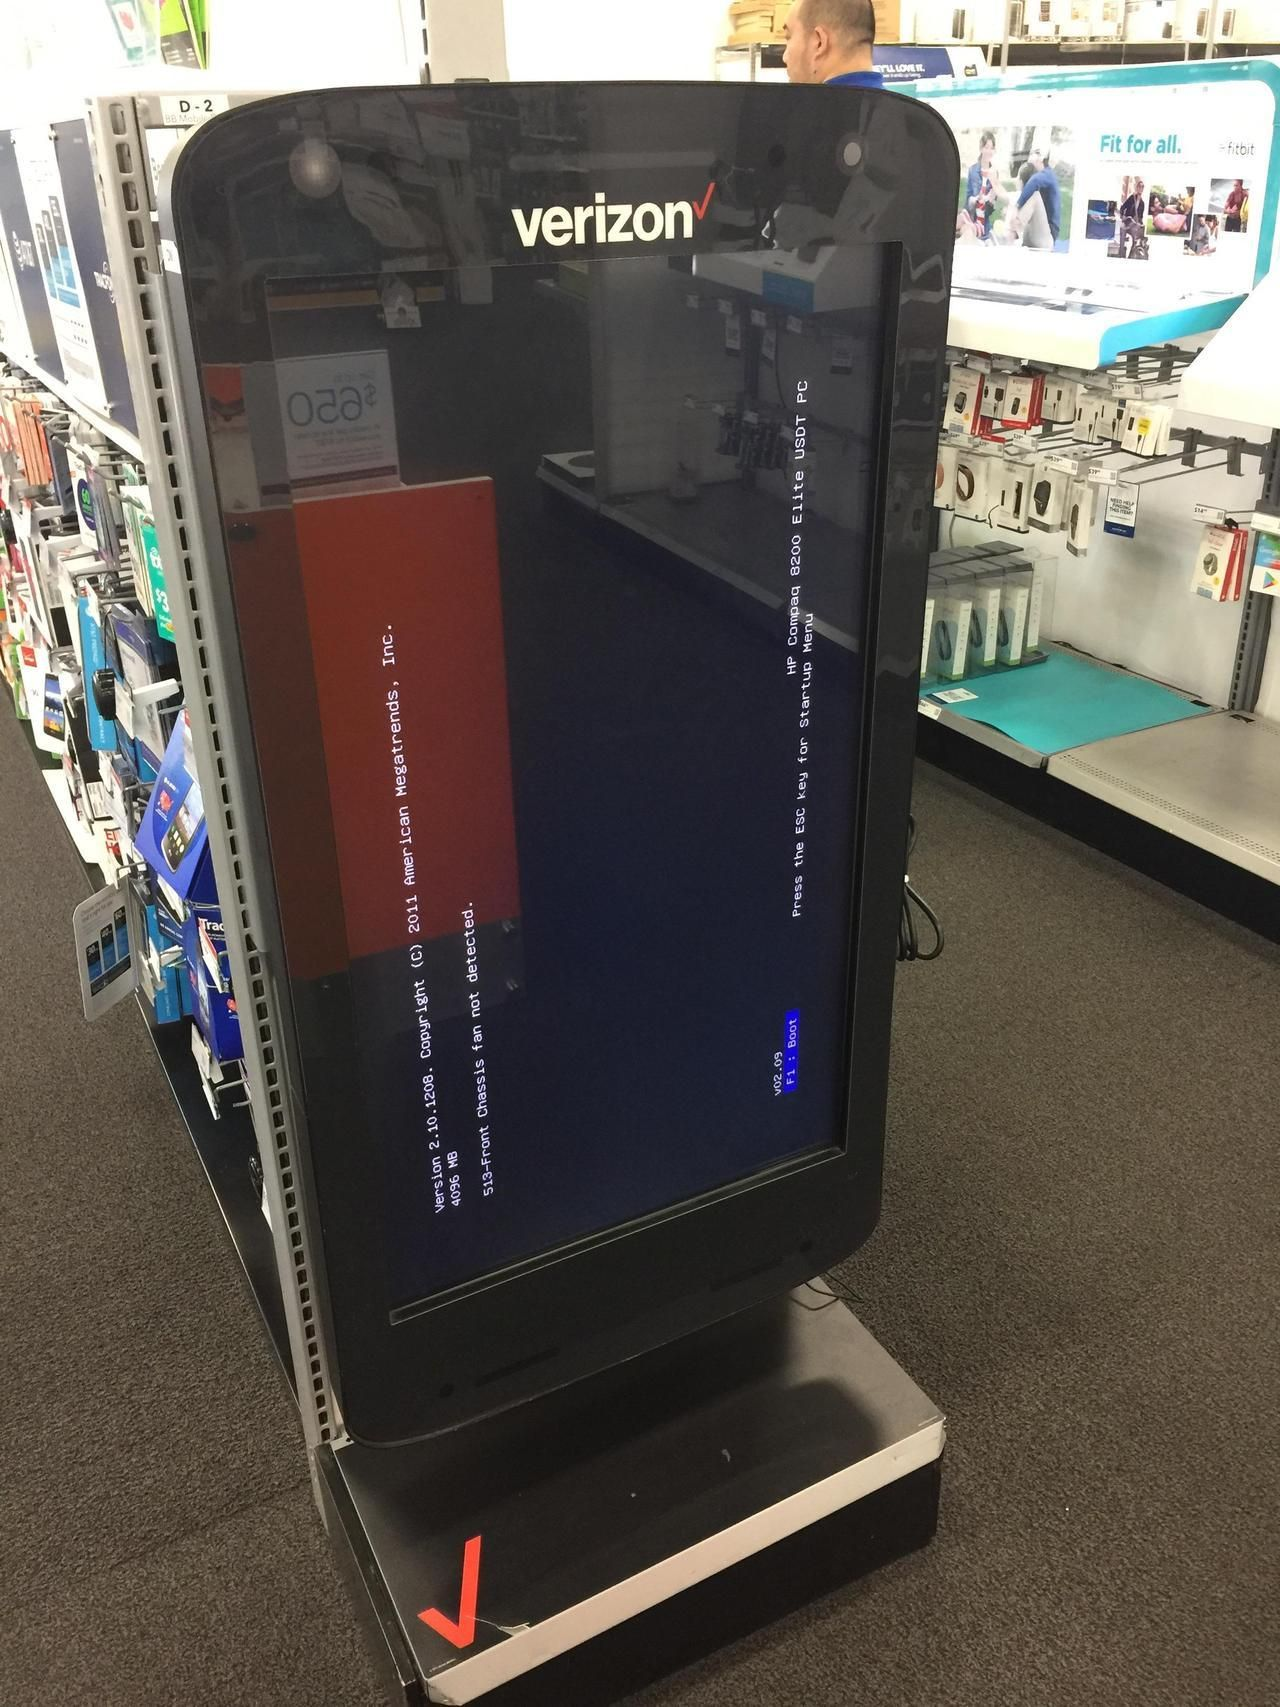 Found at a Best Buy in Chicago #bsod #pbsod | Not sure of